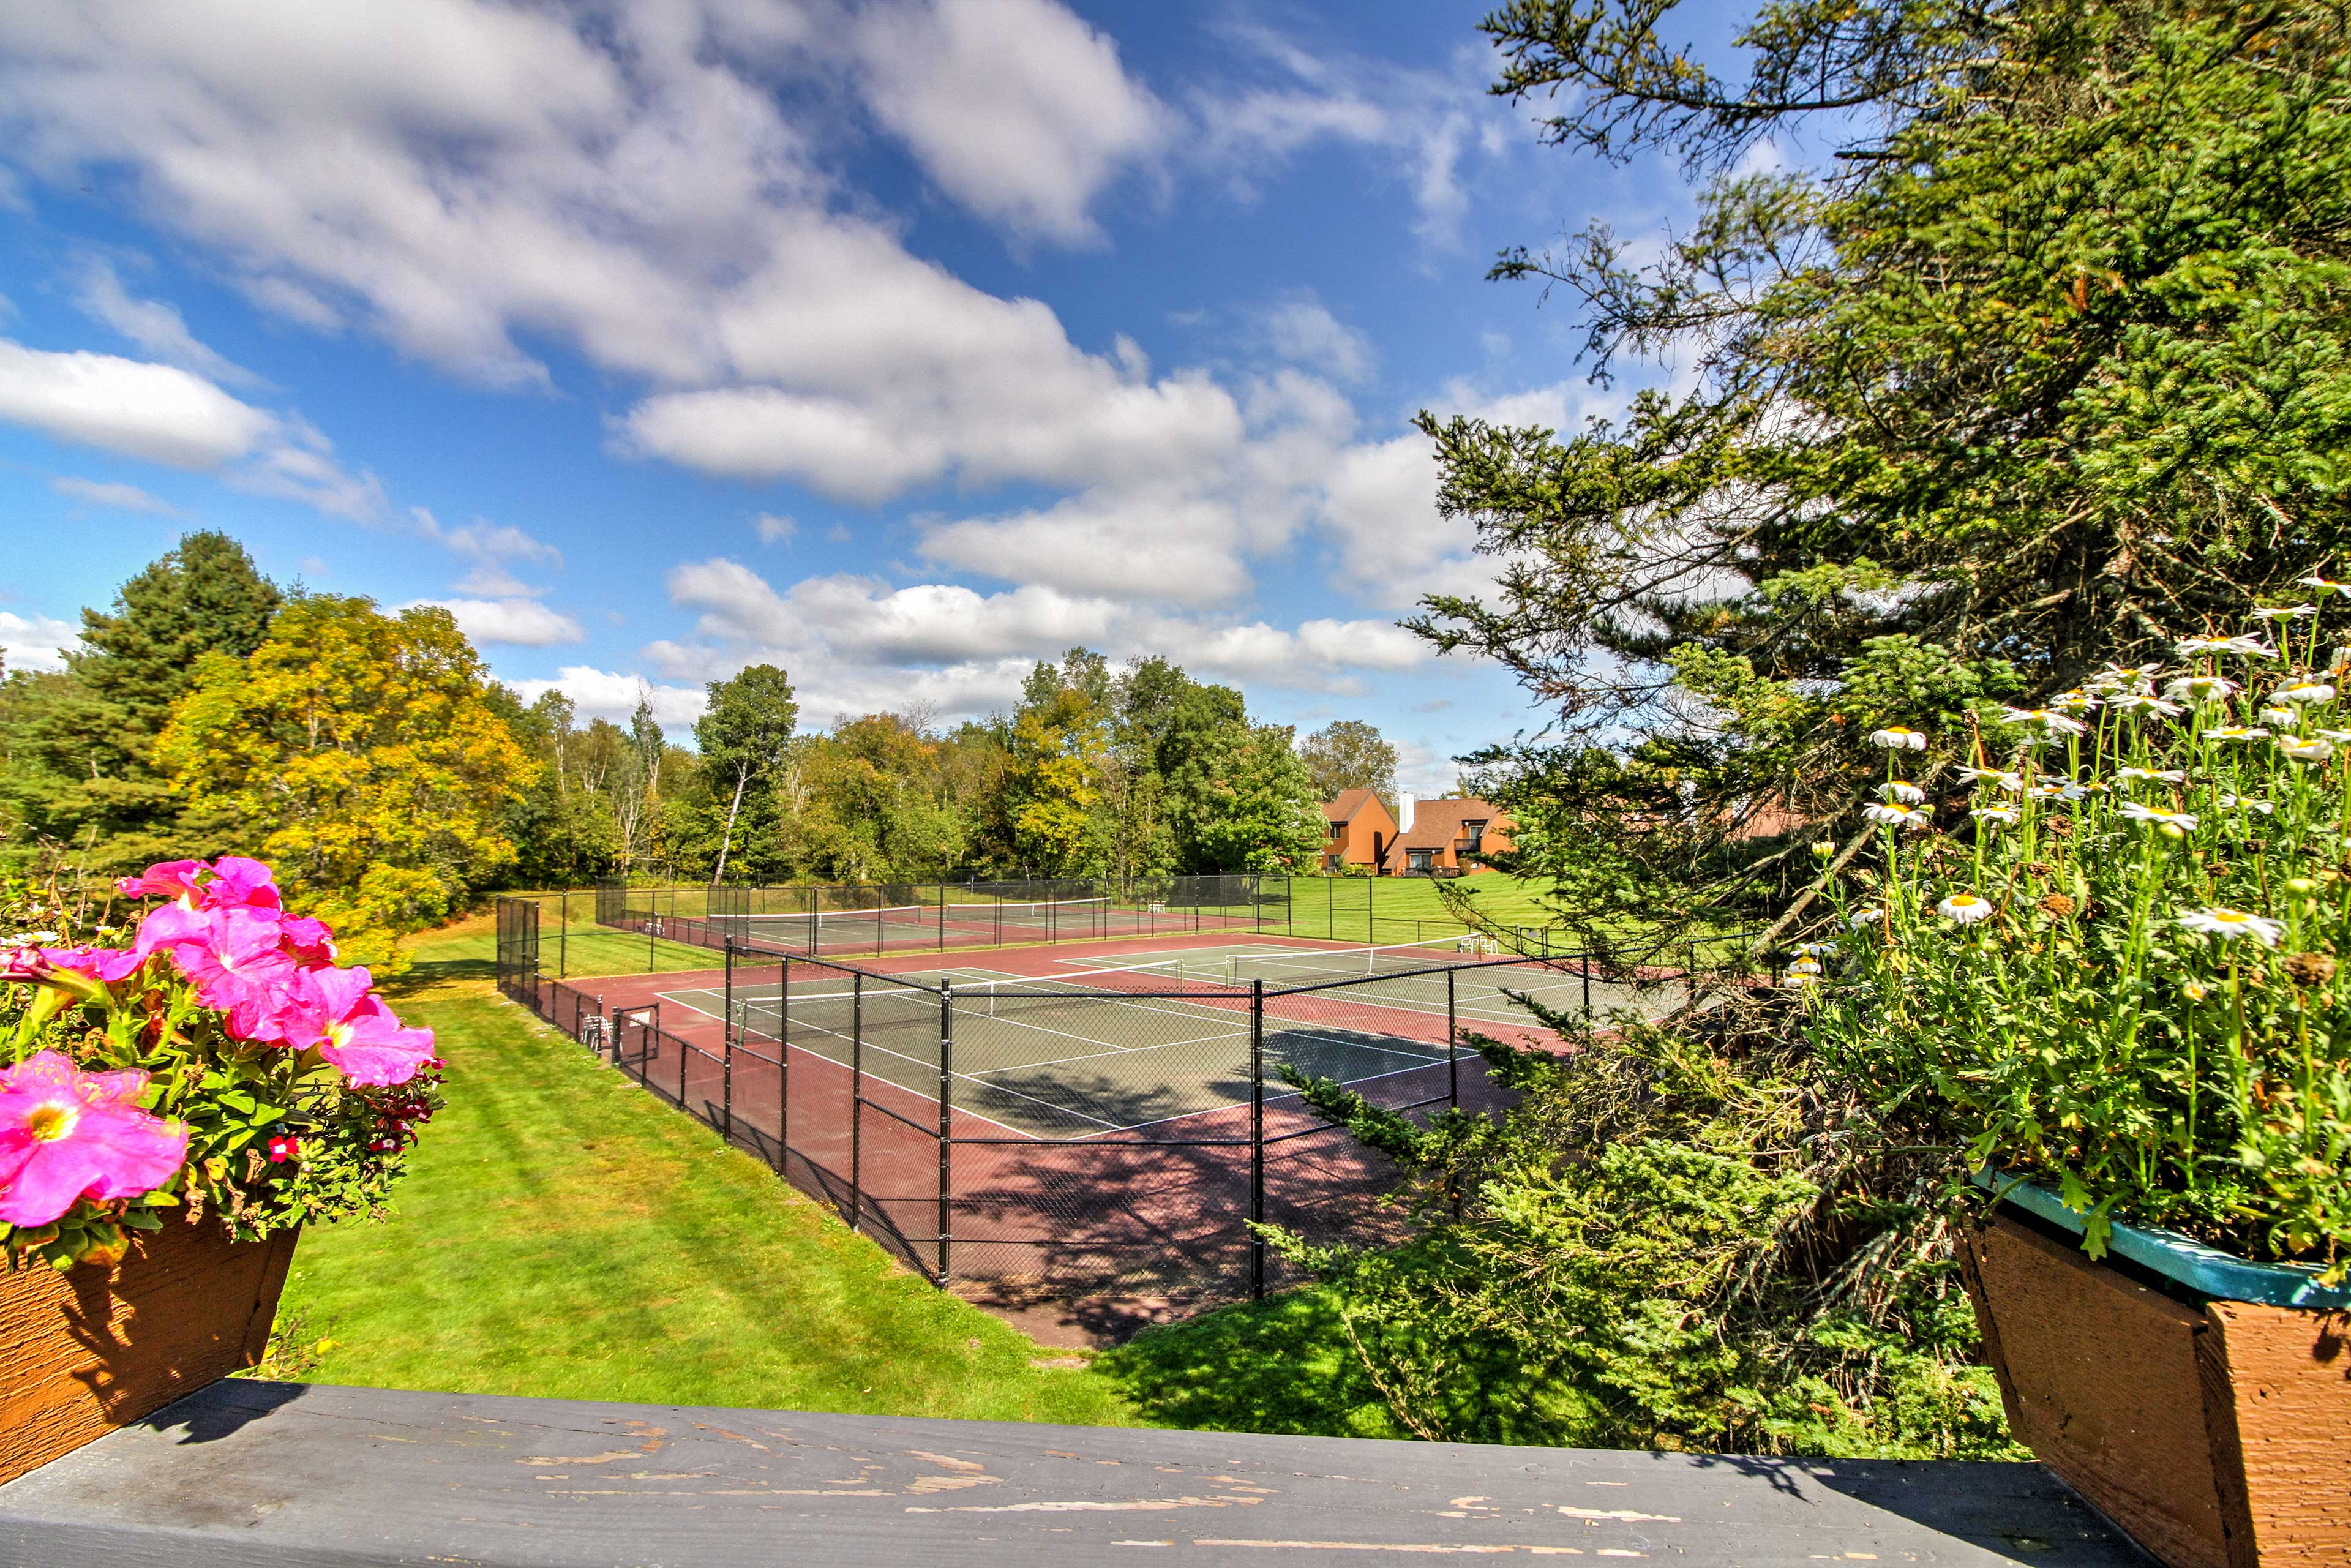 Challenge a partner to a friendly game of tennis!